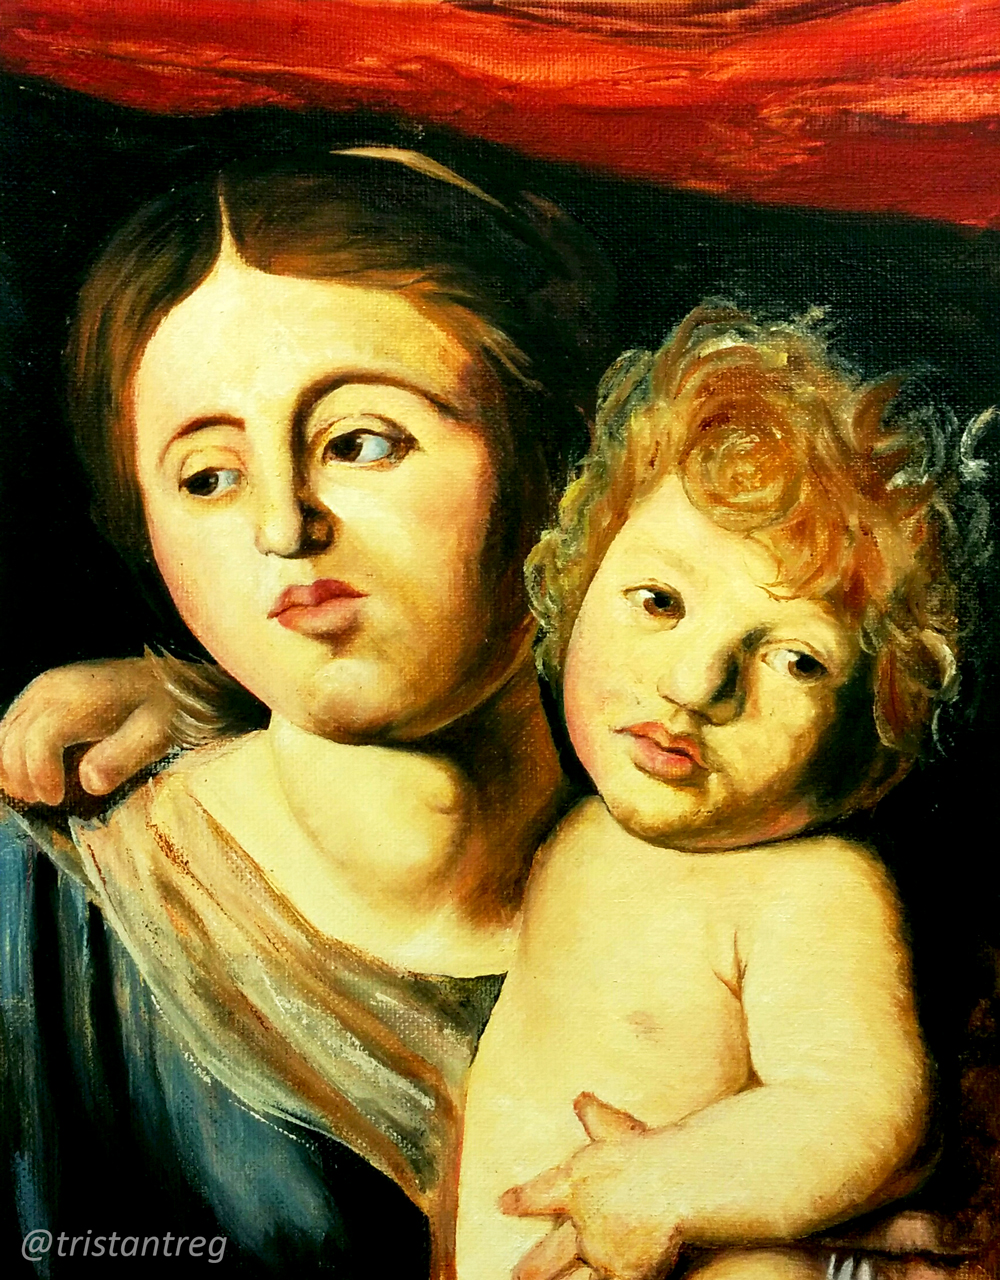 Mary-and-Son-Study-web